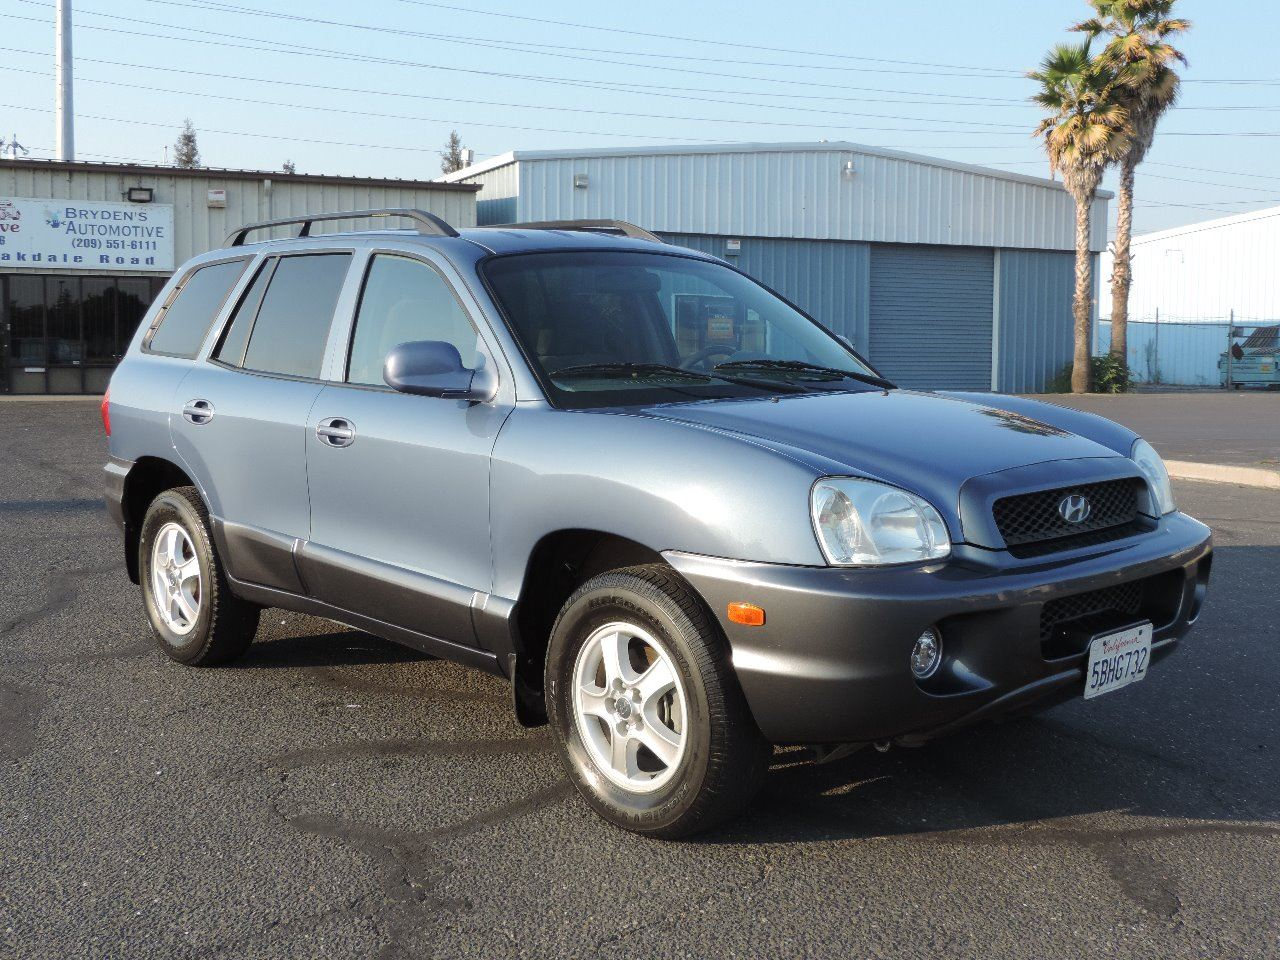 2003 hyundai santa fe gls 4dr suv in modesto ca valley auto outlet. Black Bedroom Furniture Sets. Home Design Ideas